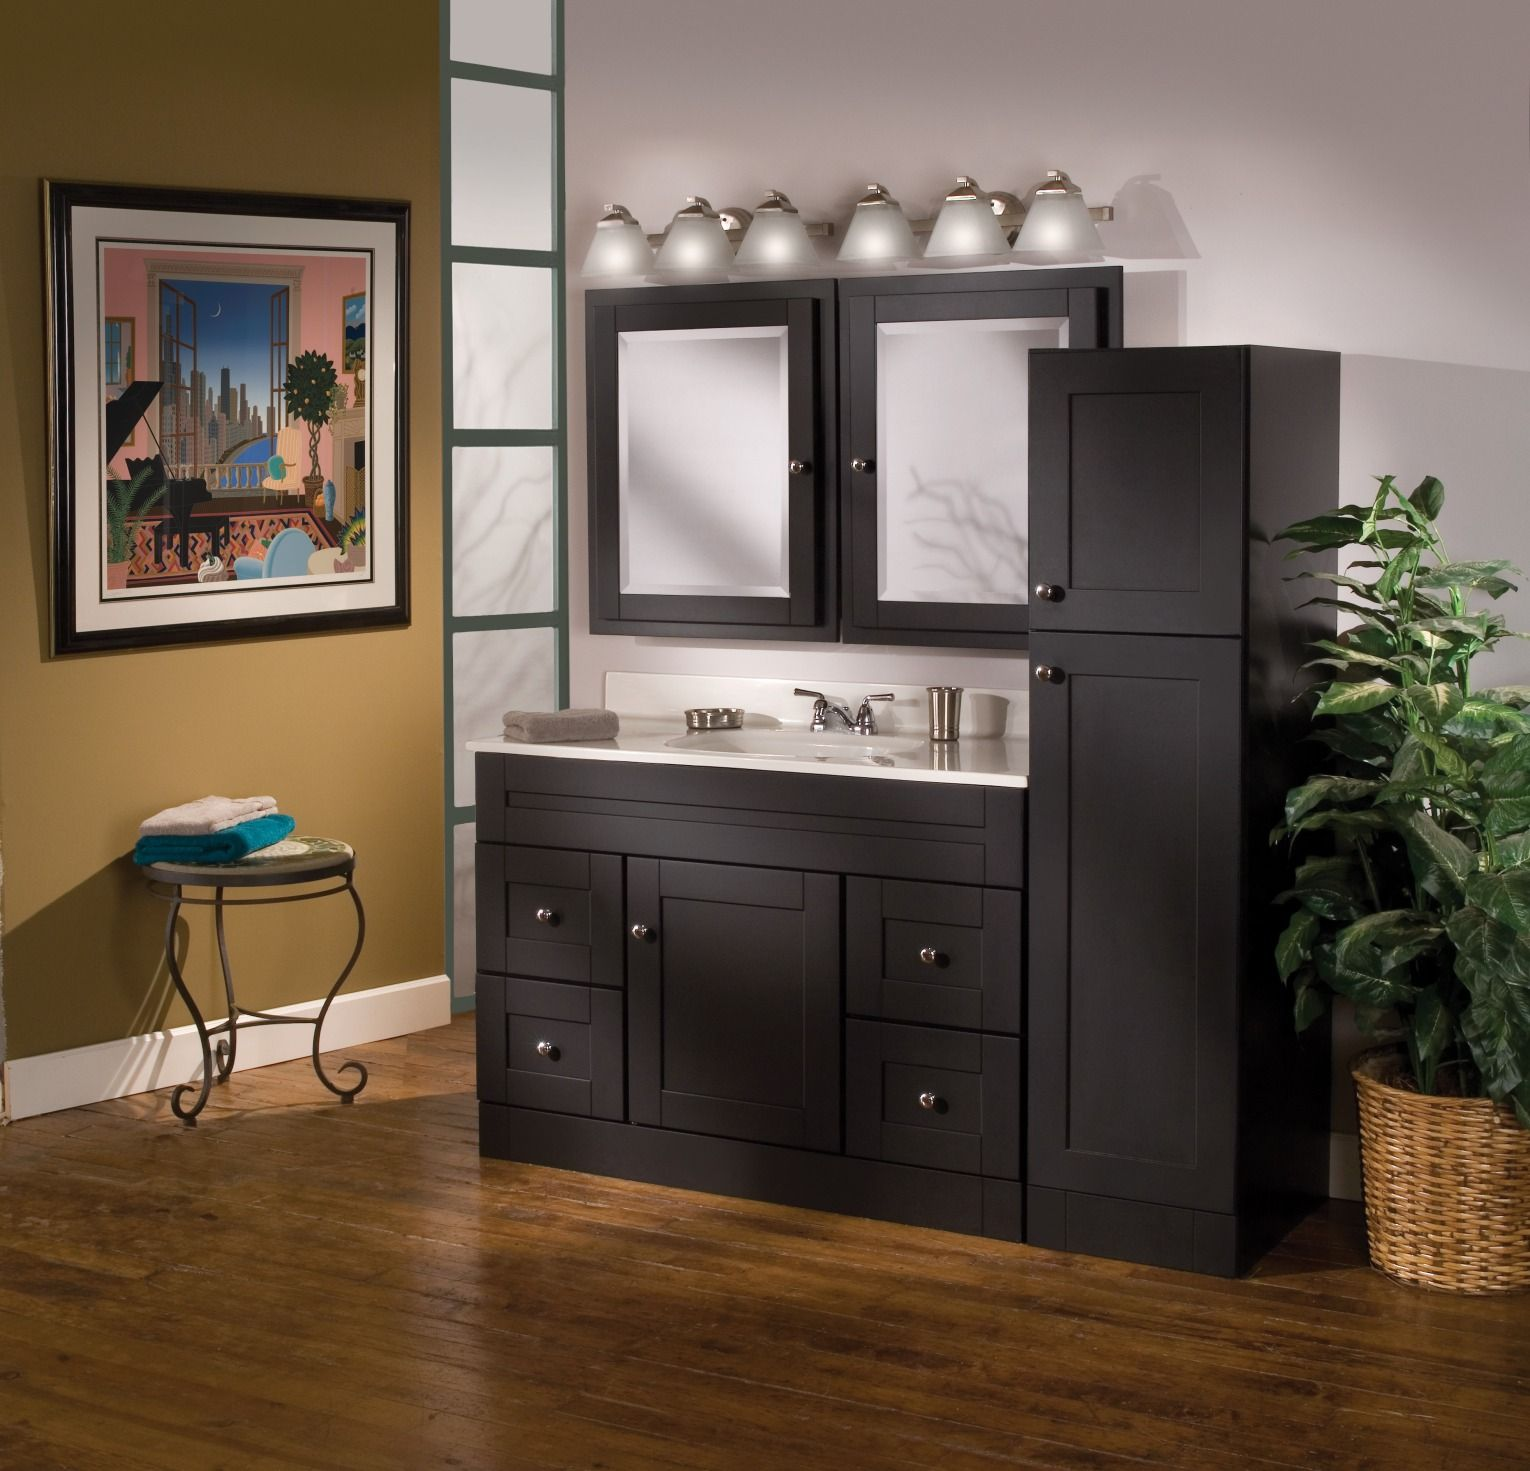 Beautify Your Bathroom! Large Enough To House All Your Bathroom Necessities,  The Murano Vanity